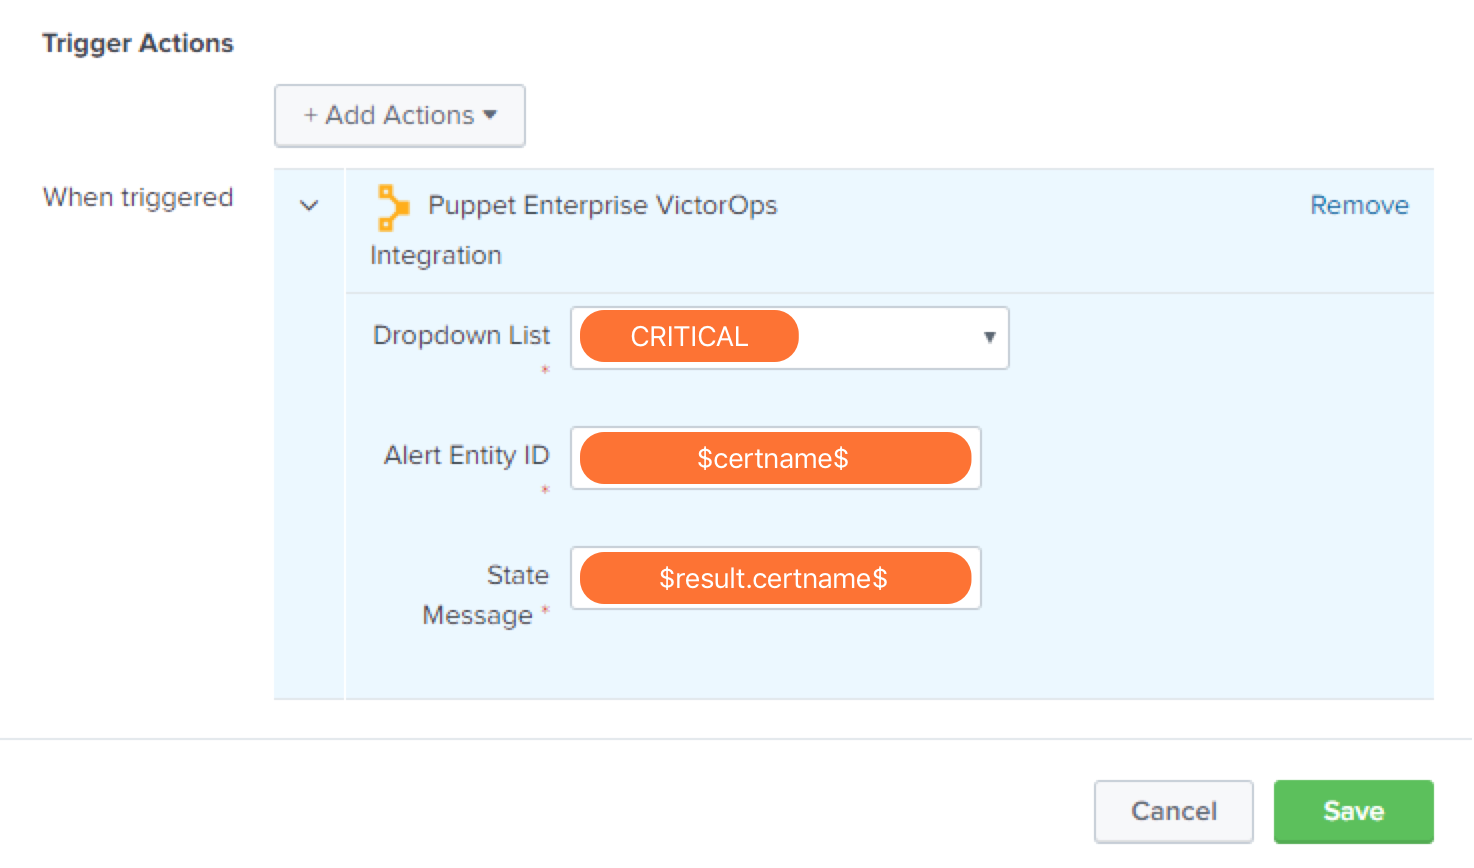 create an incident victorops puppet enterprise variable configuration